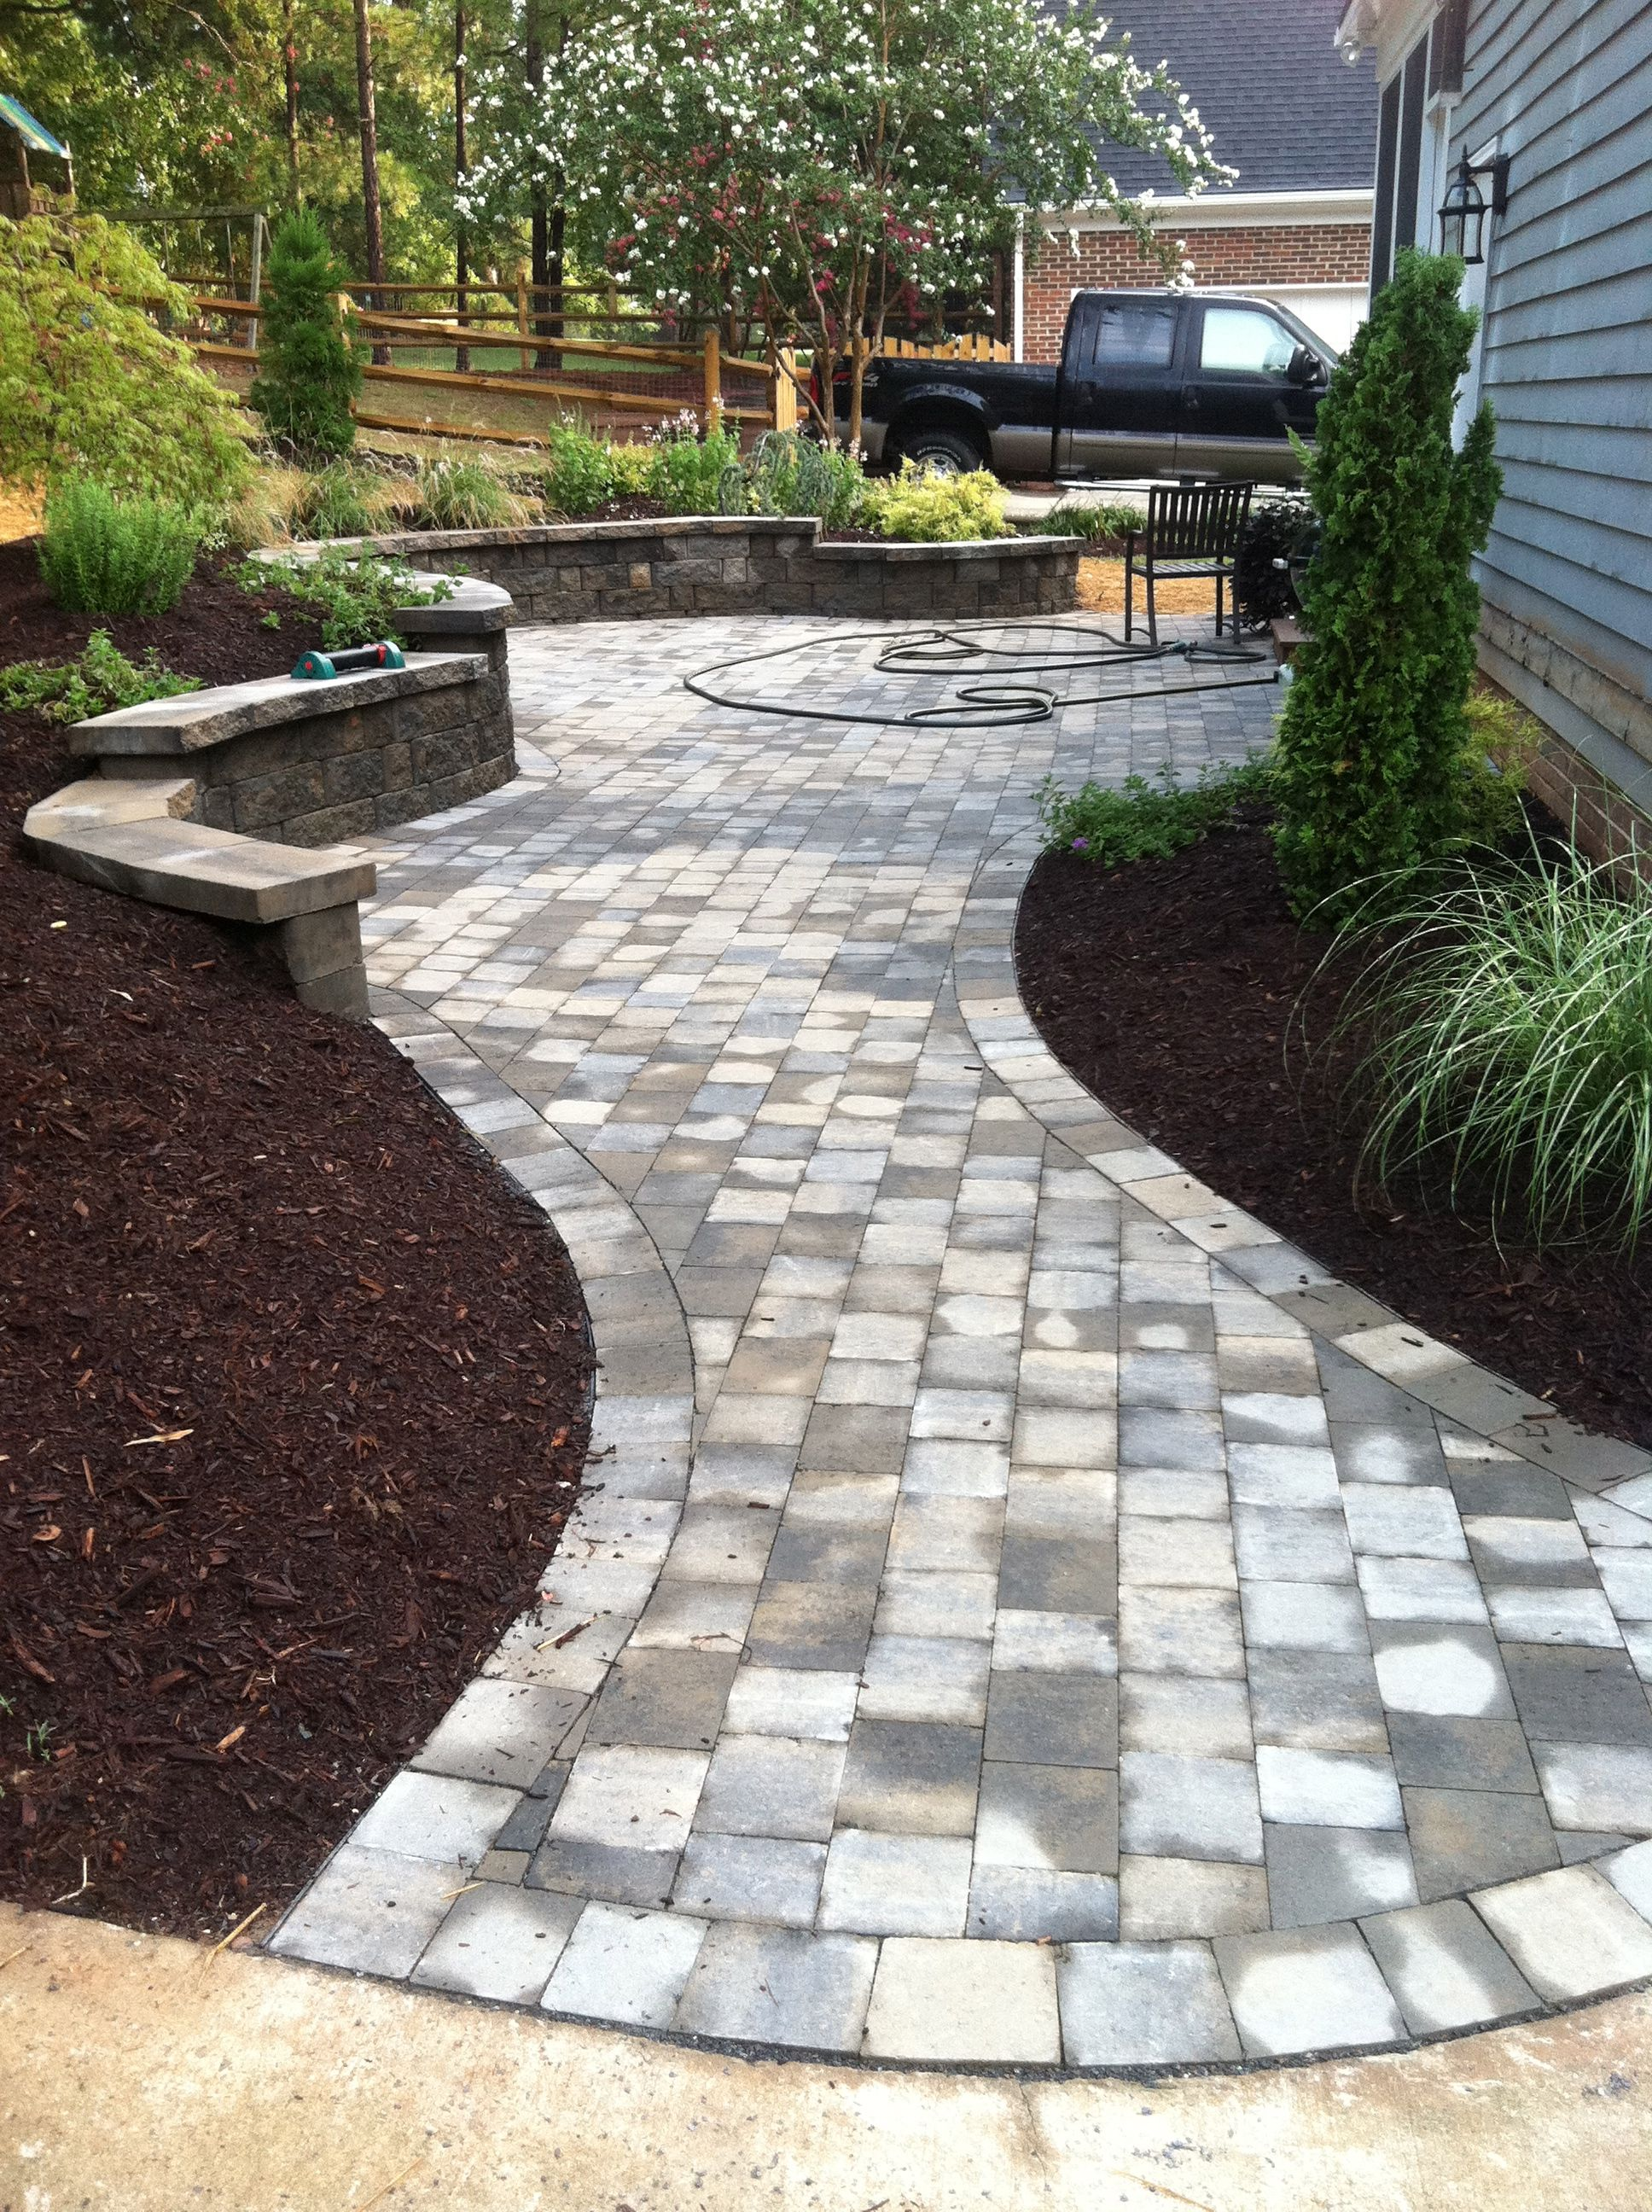 Walkway Designs And Patio Designs | Paver Patio/Walkway